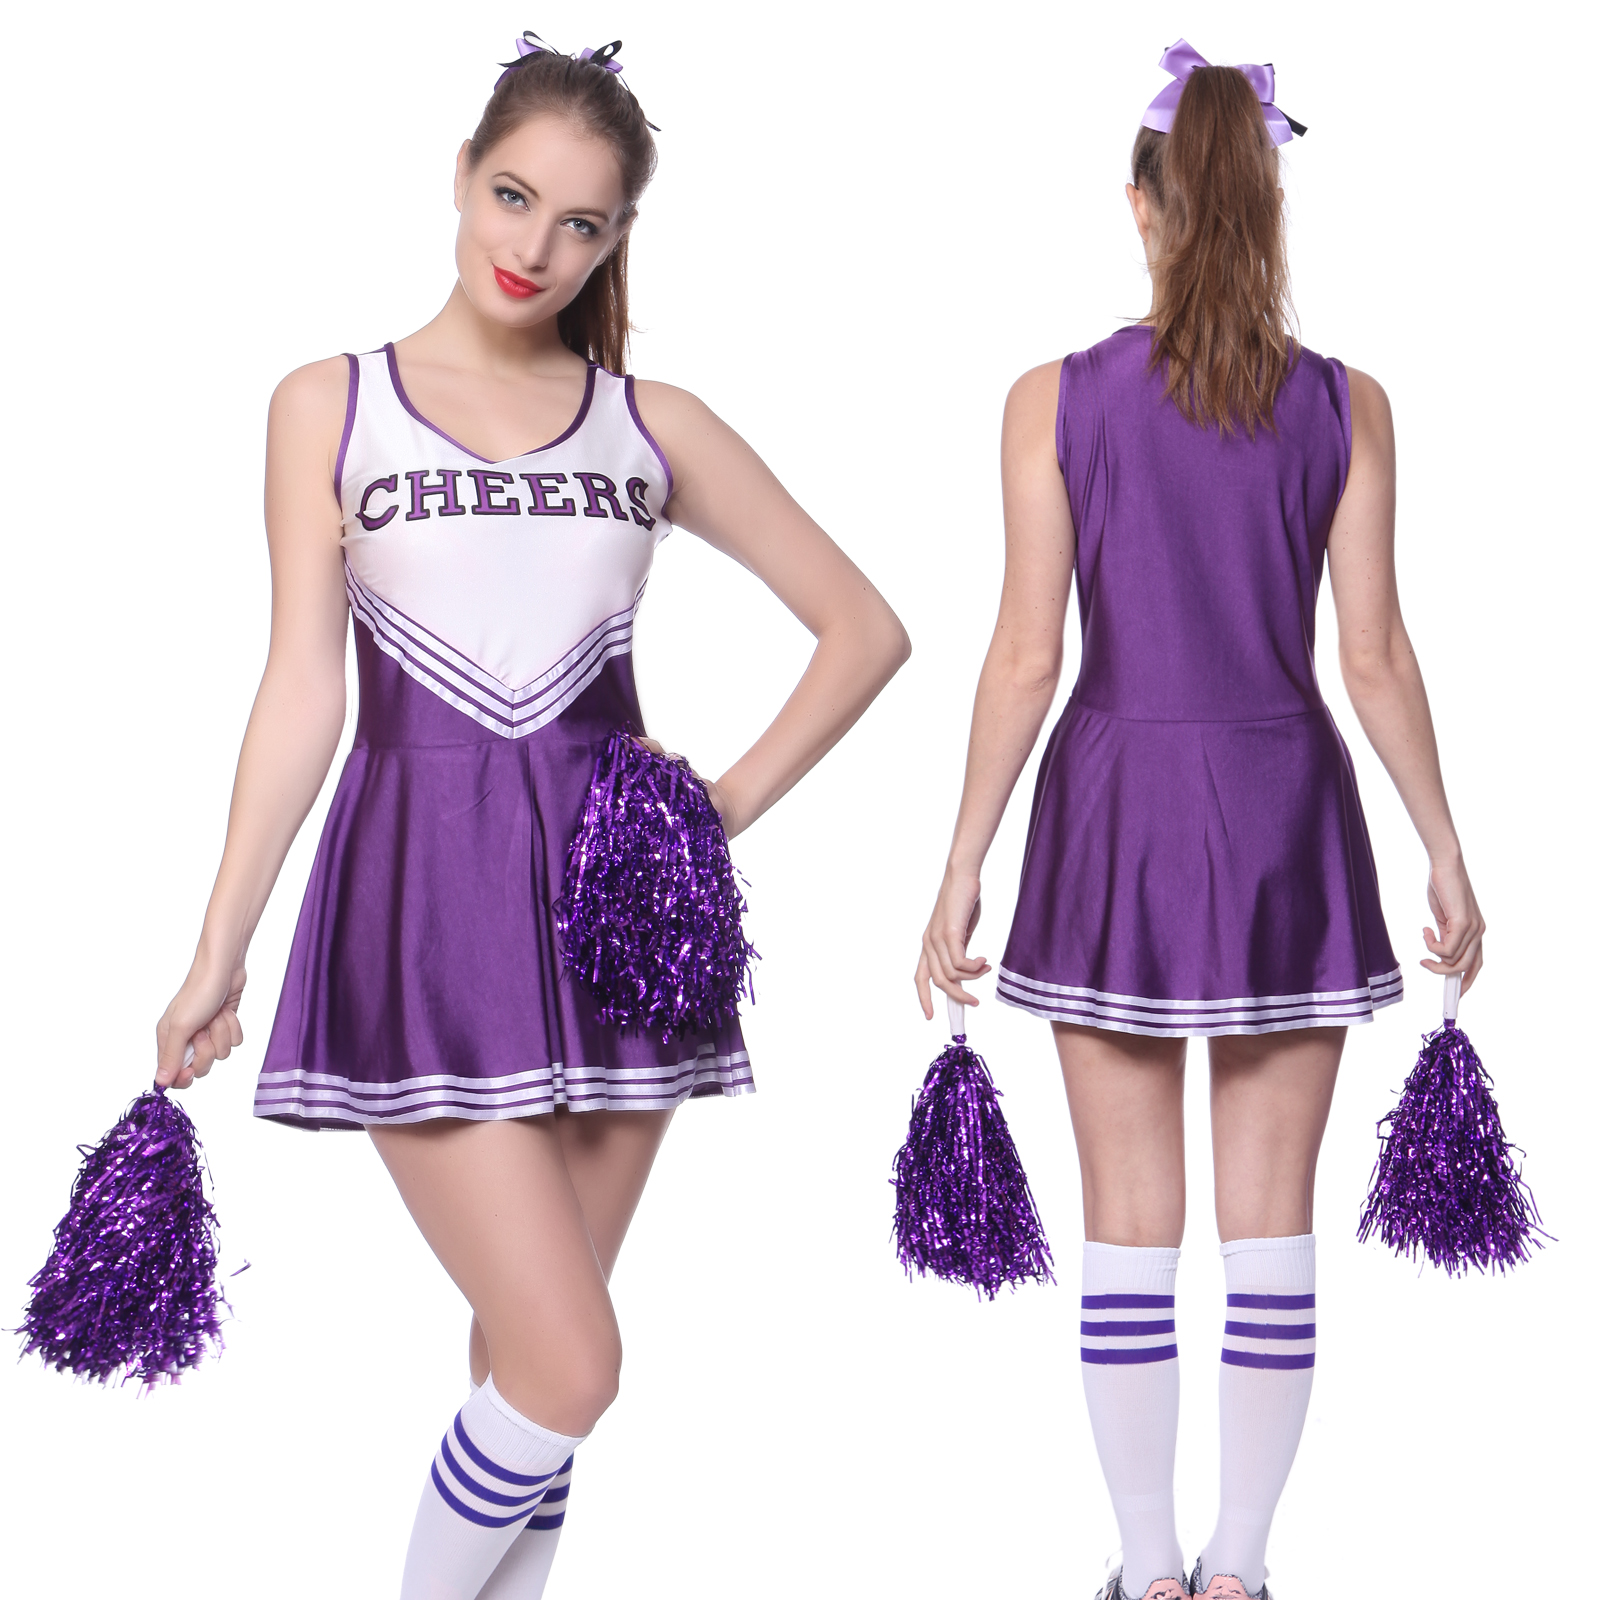 Cheerleader Fancy Dress High School Girls Sports Outfit Uniform ...